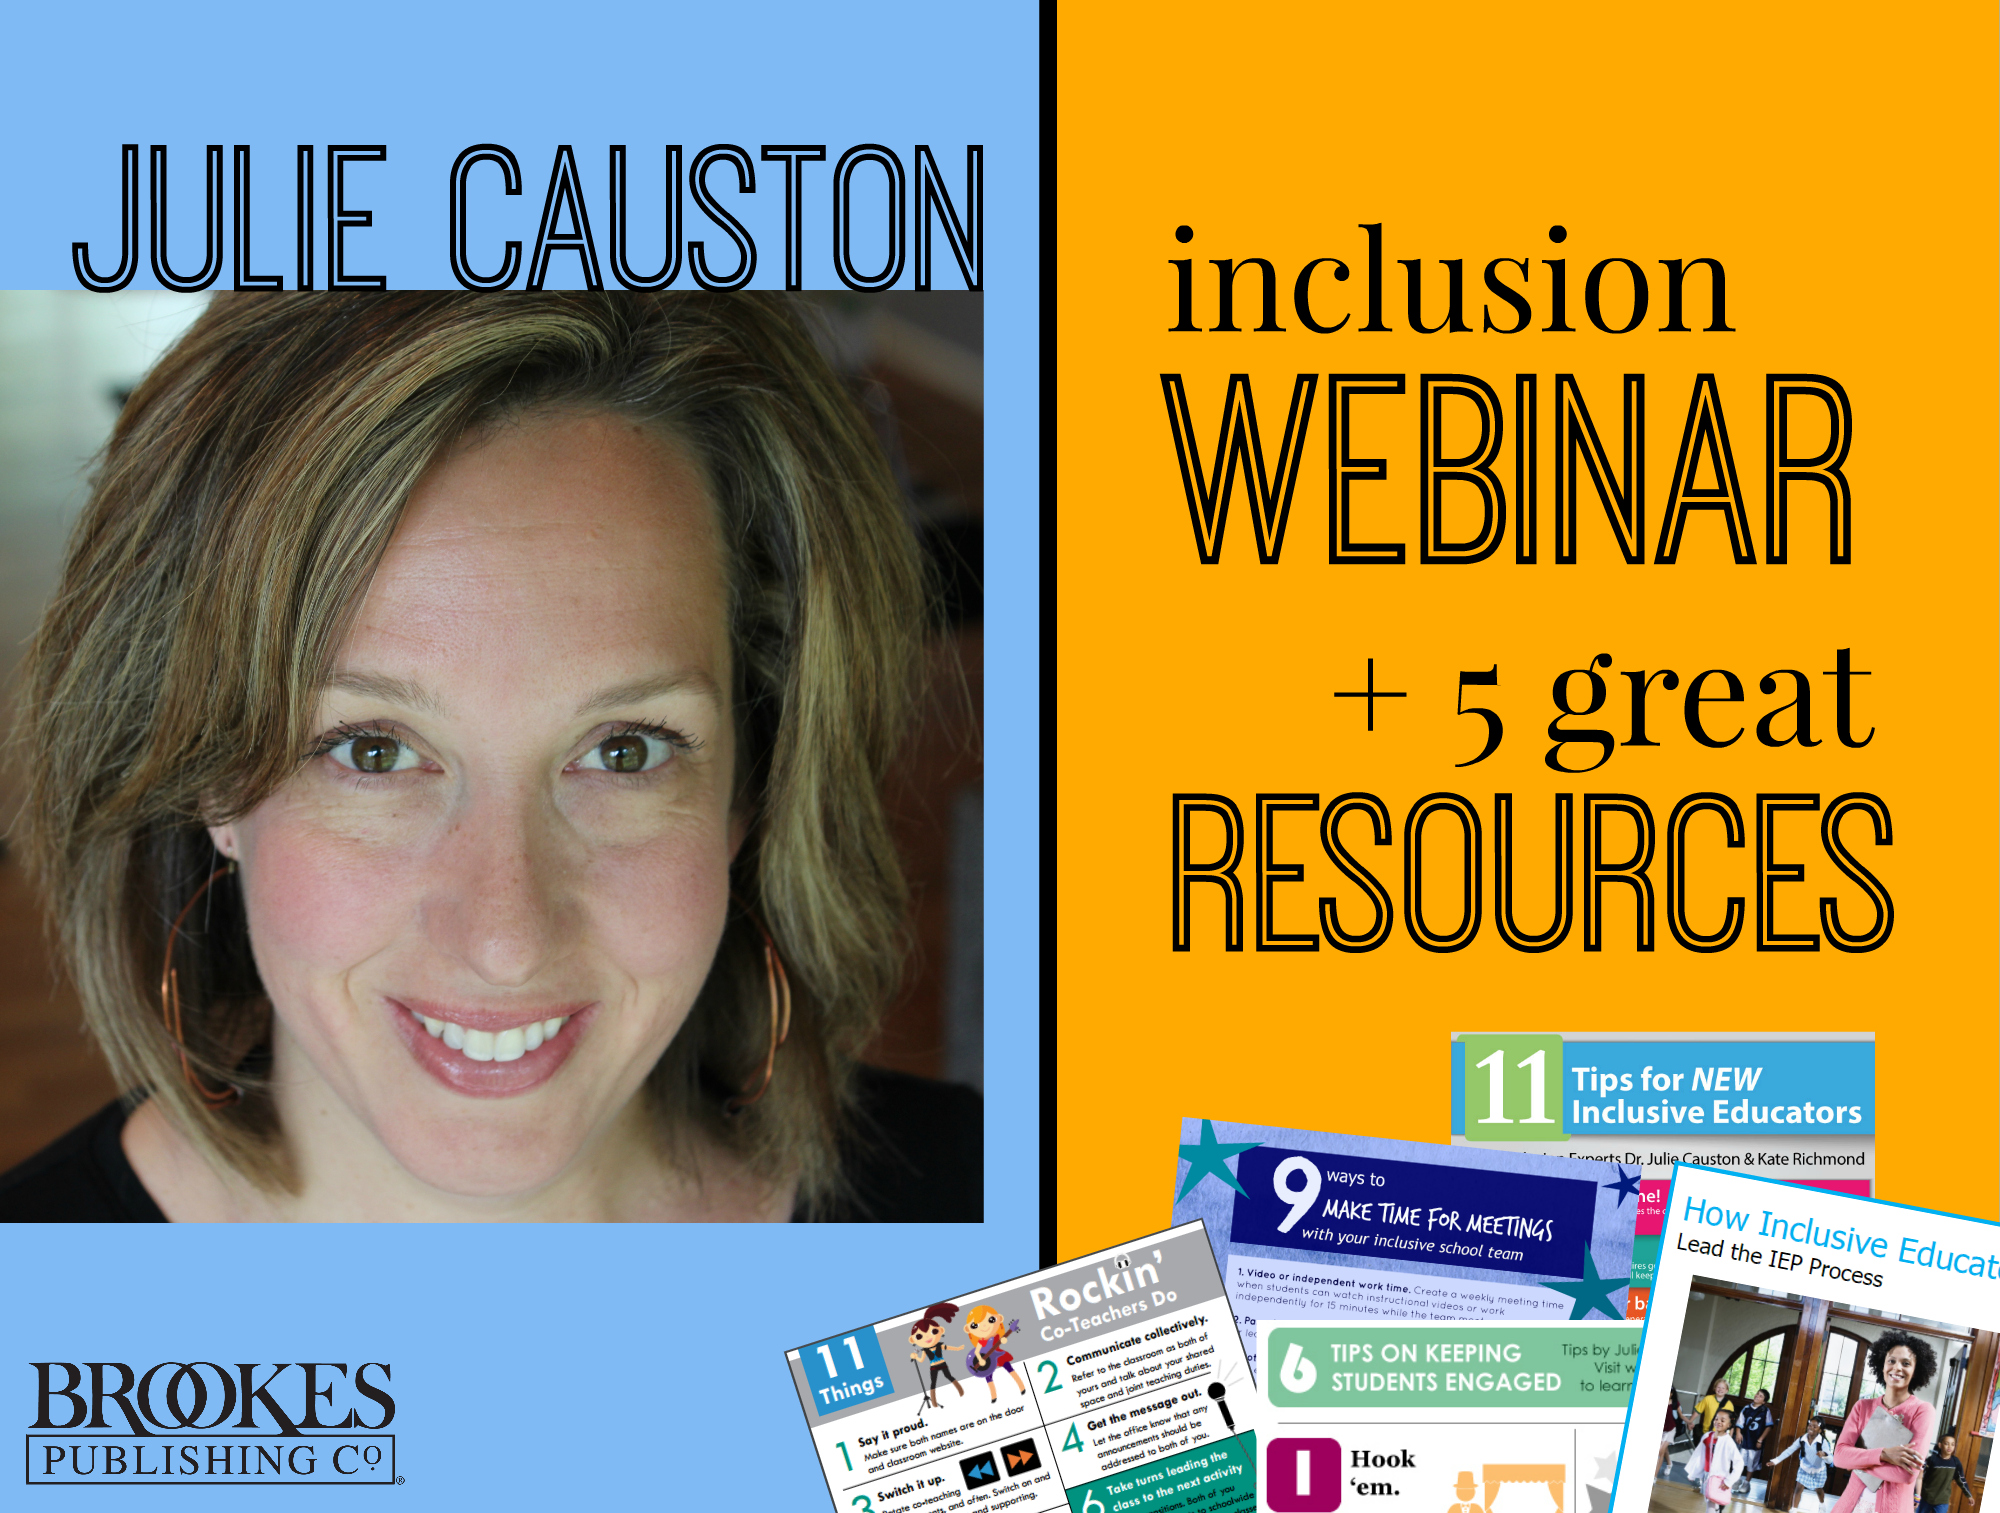 Julie Causton webinar